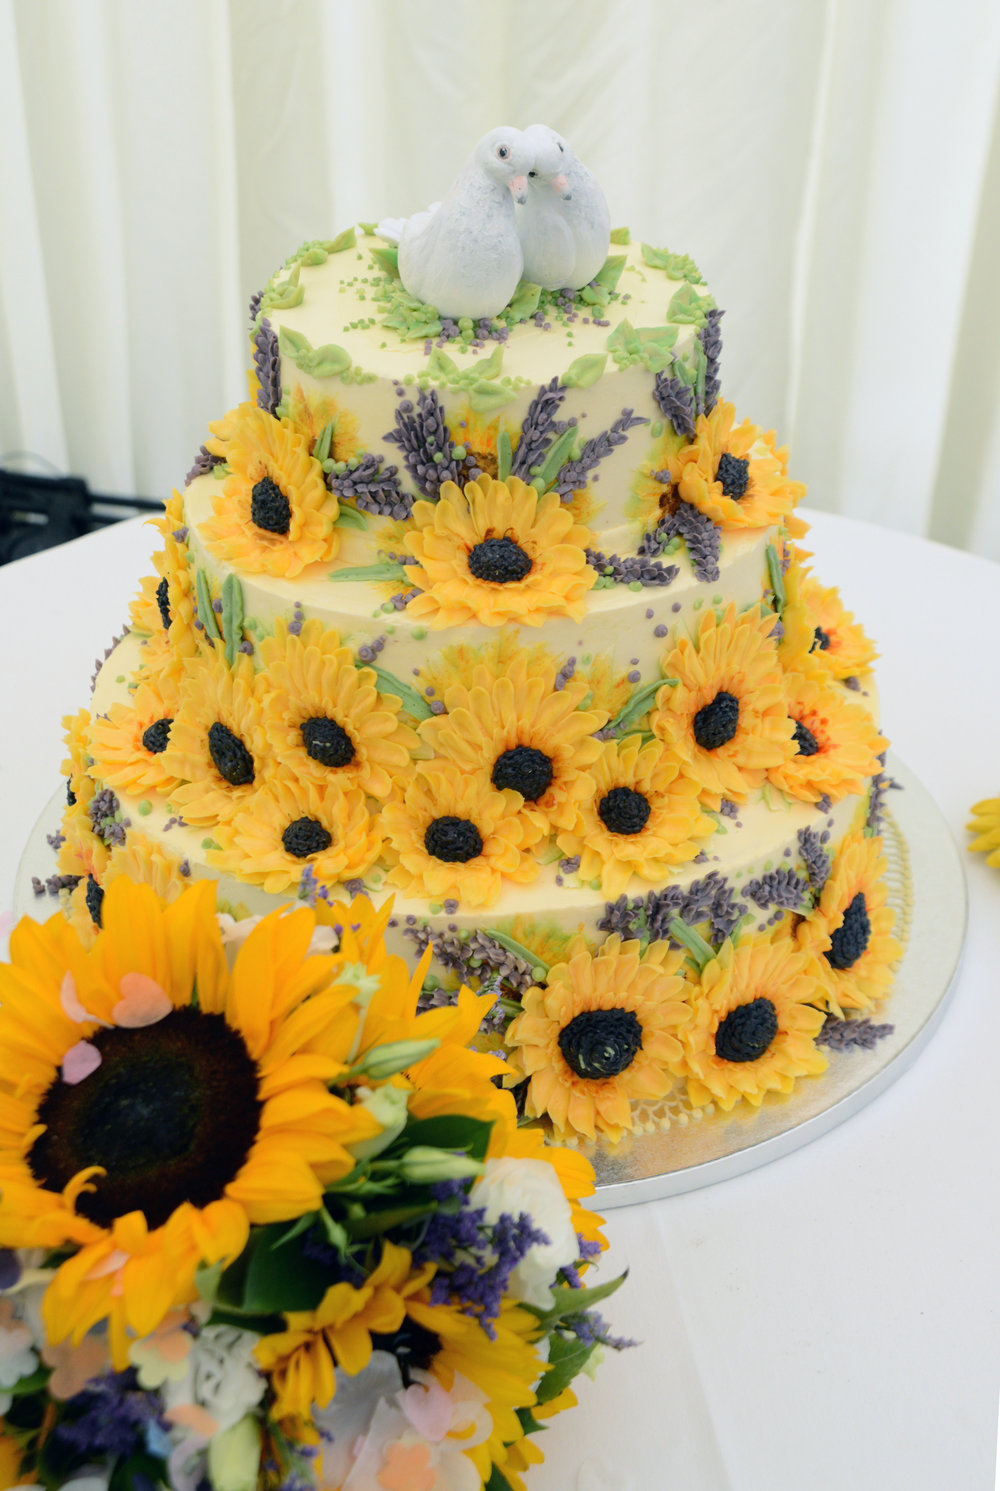 Posted - Cakes 3 copy 2.JPG